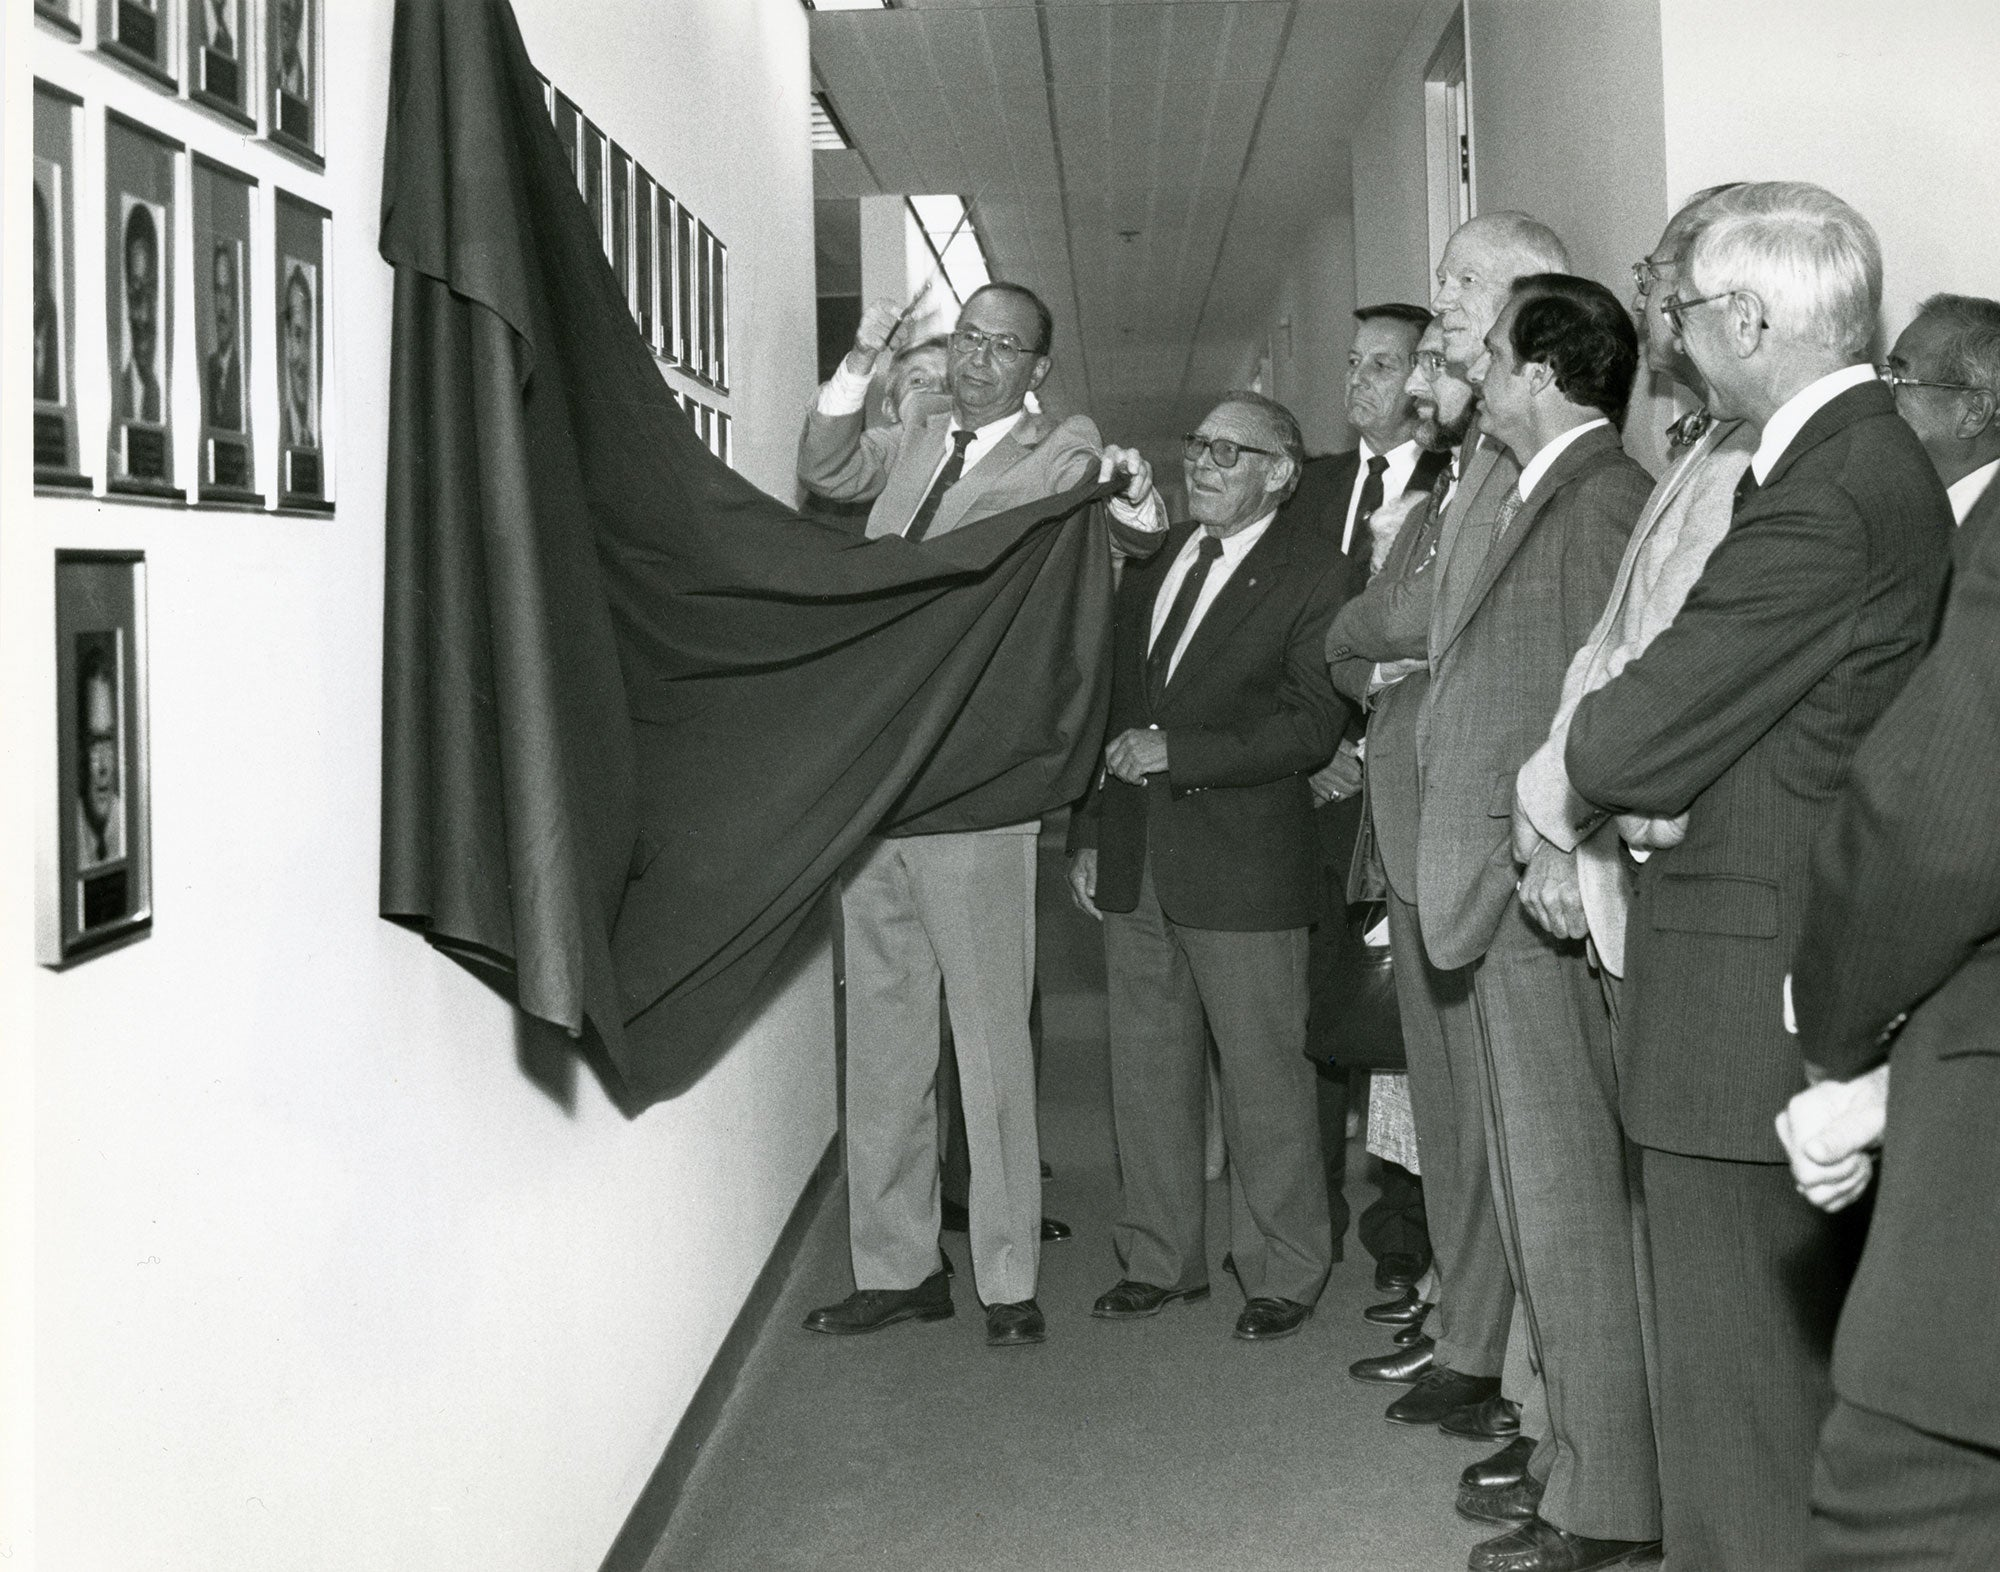 MTC commissioners past and present gather in September 1984 for the unveiling of the MTC Former Commissioners Photo Gallery, with Chair Quentin Kopp (left), presiding.